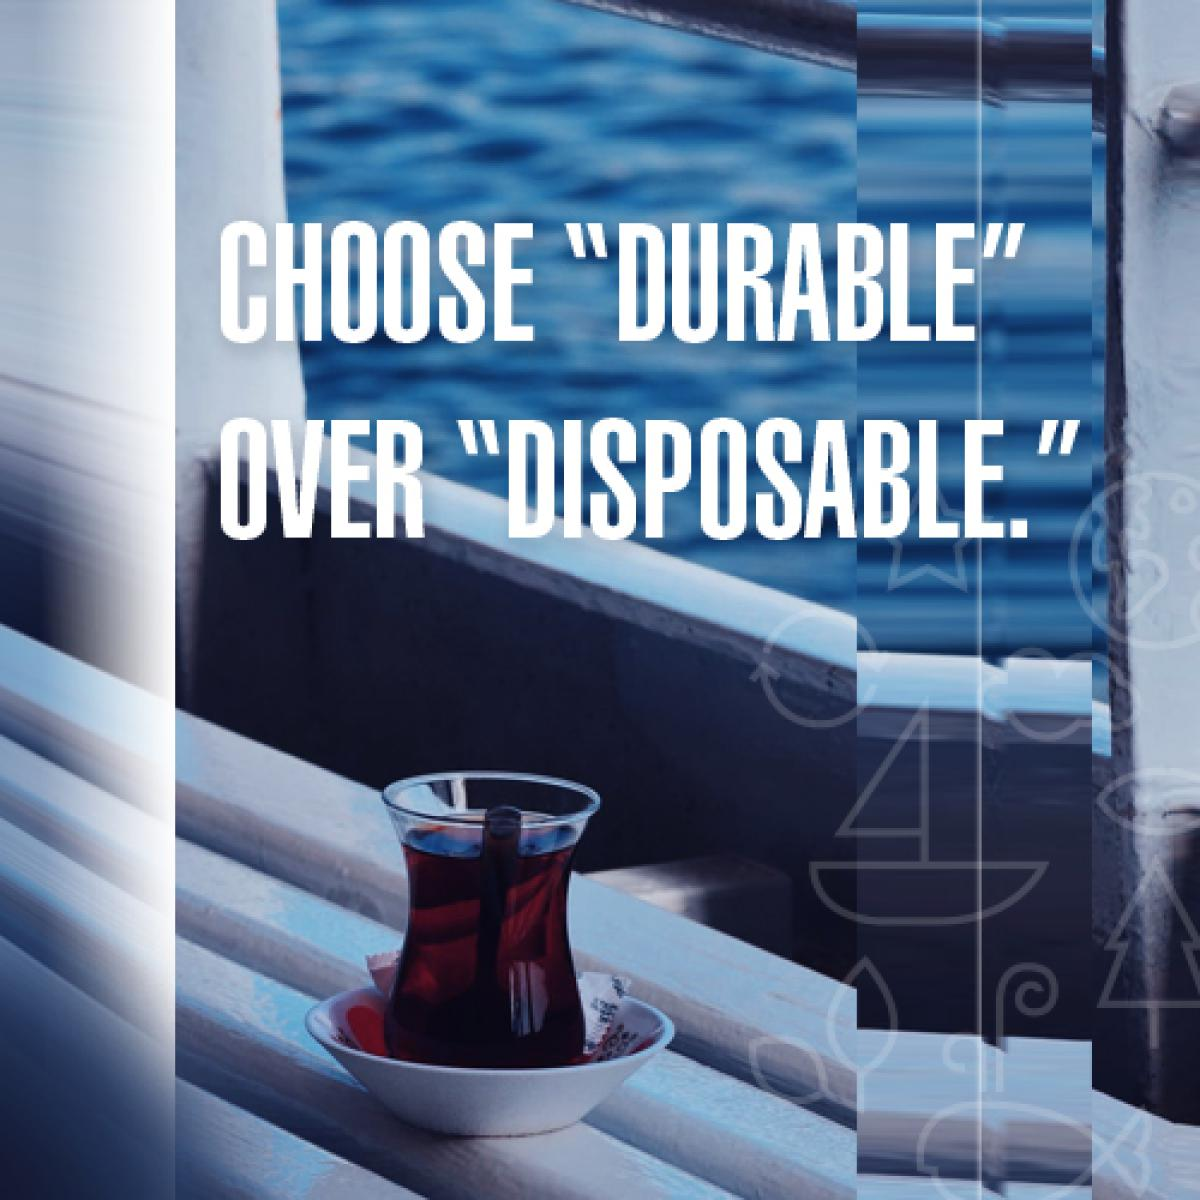 Image 0504: Choose durable over disposable